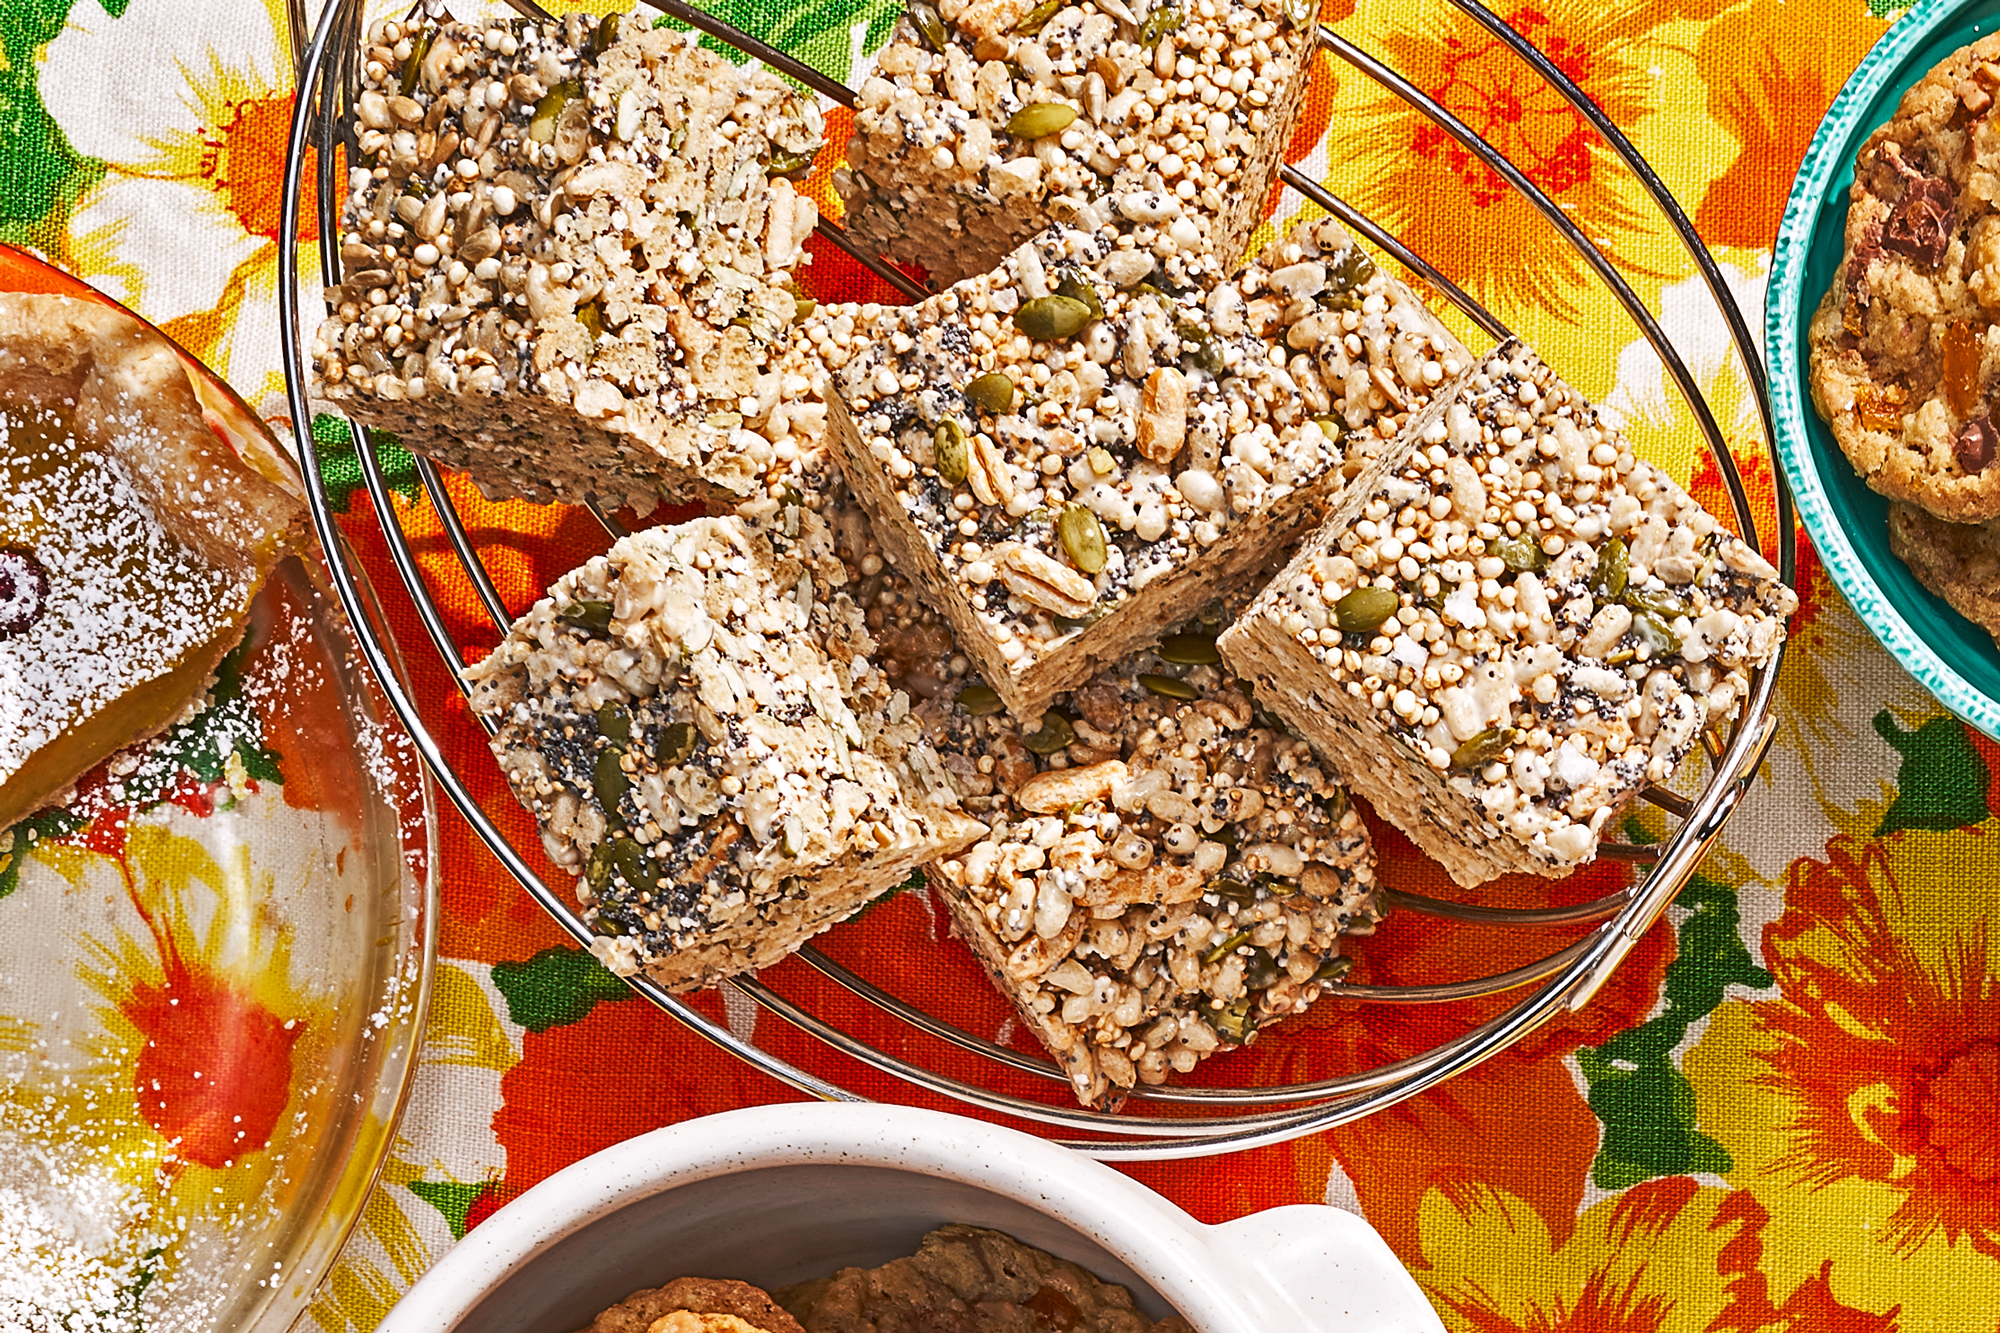 Birdseed Marshmallow Crispy Treats Recipe